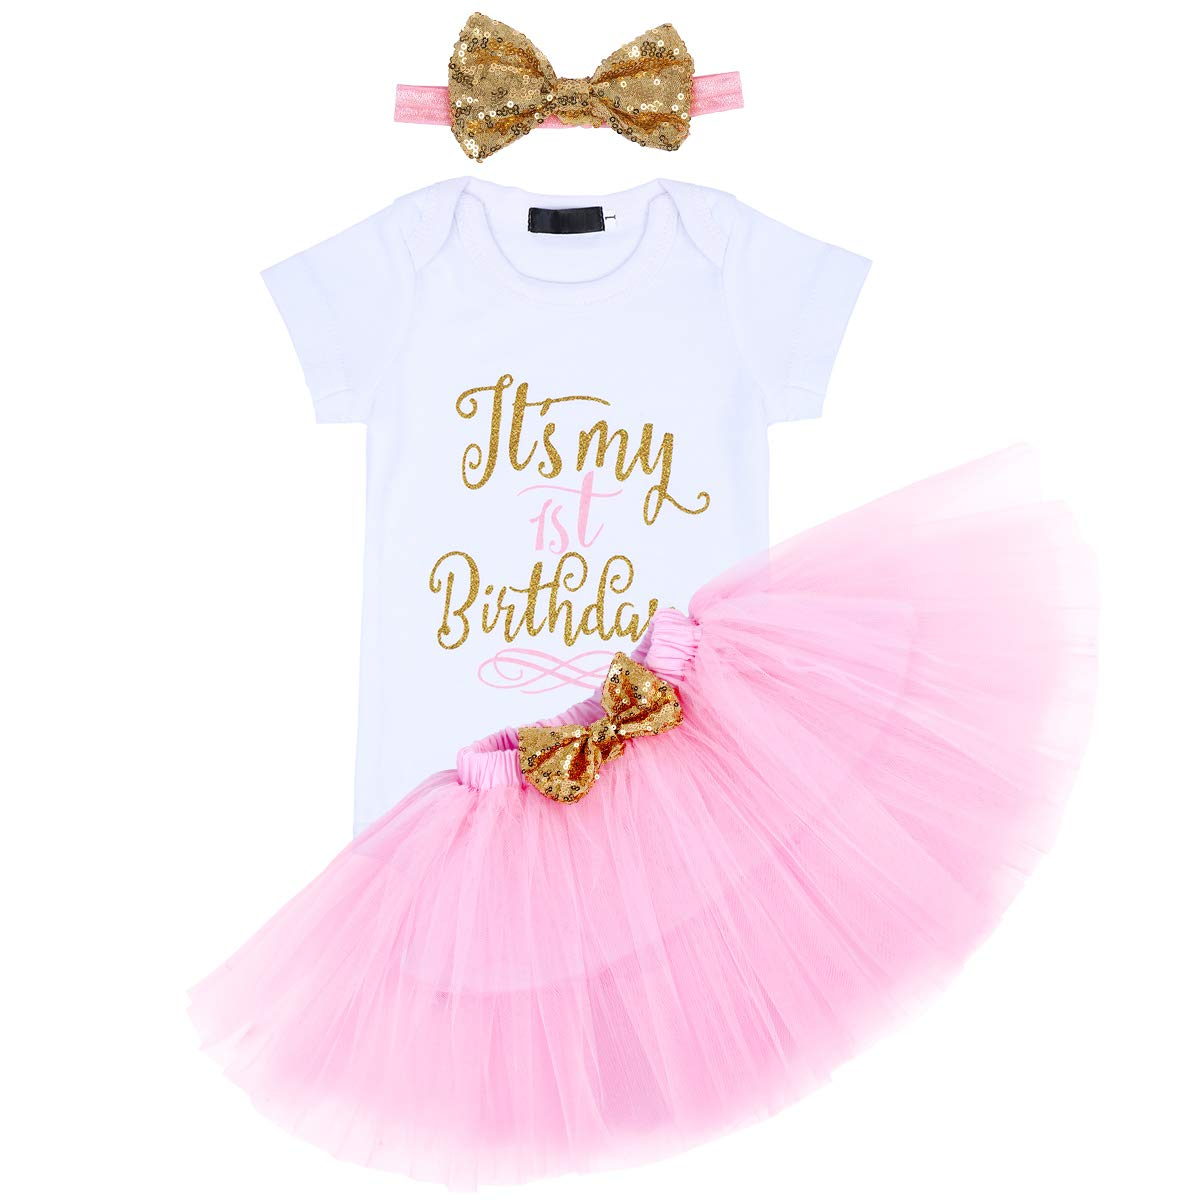 FYMNSI Baby It/'s my 1st 2nd 1//2 Birthday Party Princess Tutu Outfit Girl Half First Second Birthday Cake Smash Dress Shiny Glitter Print Short Sleeve Romper Headband 3pcs Photo Props Clothes Skirt